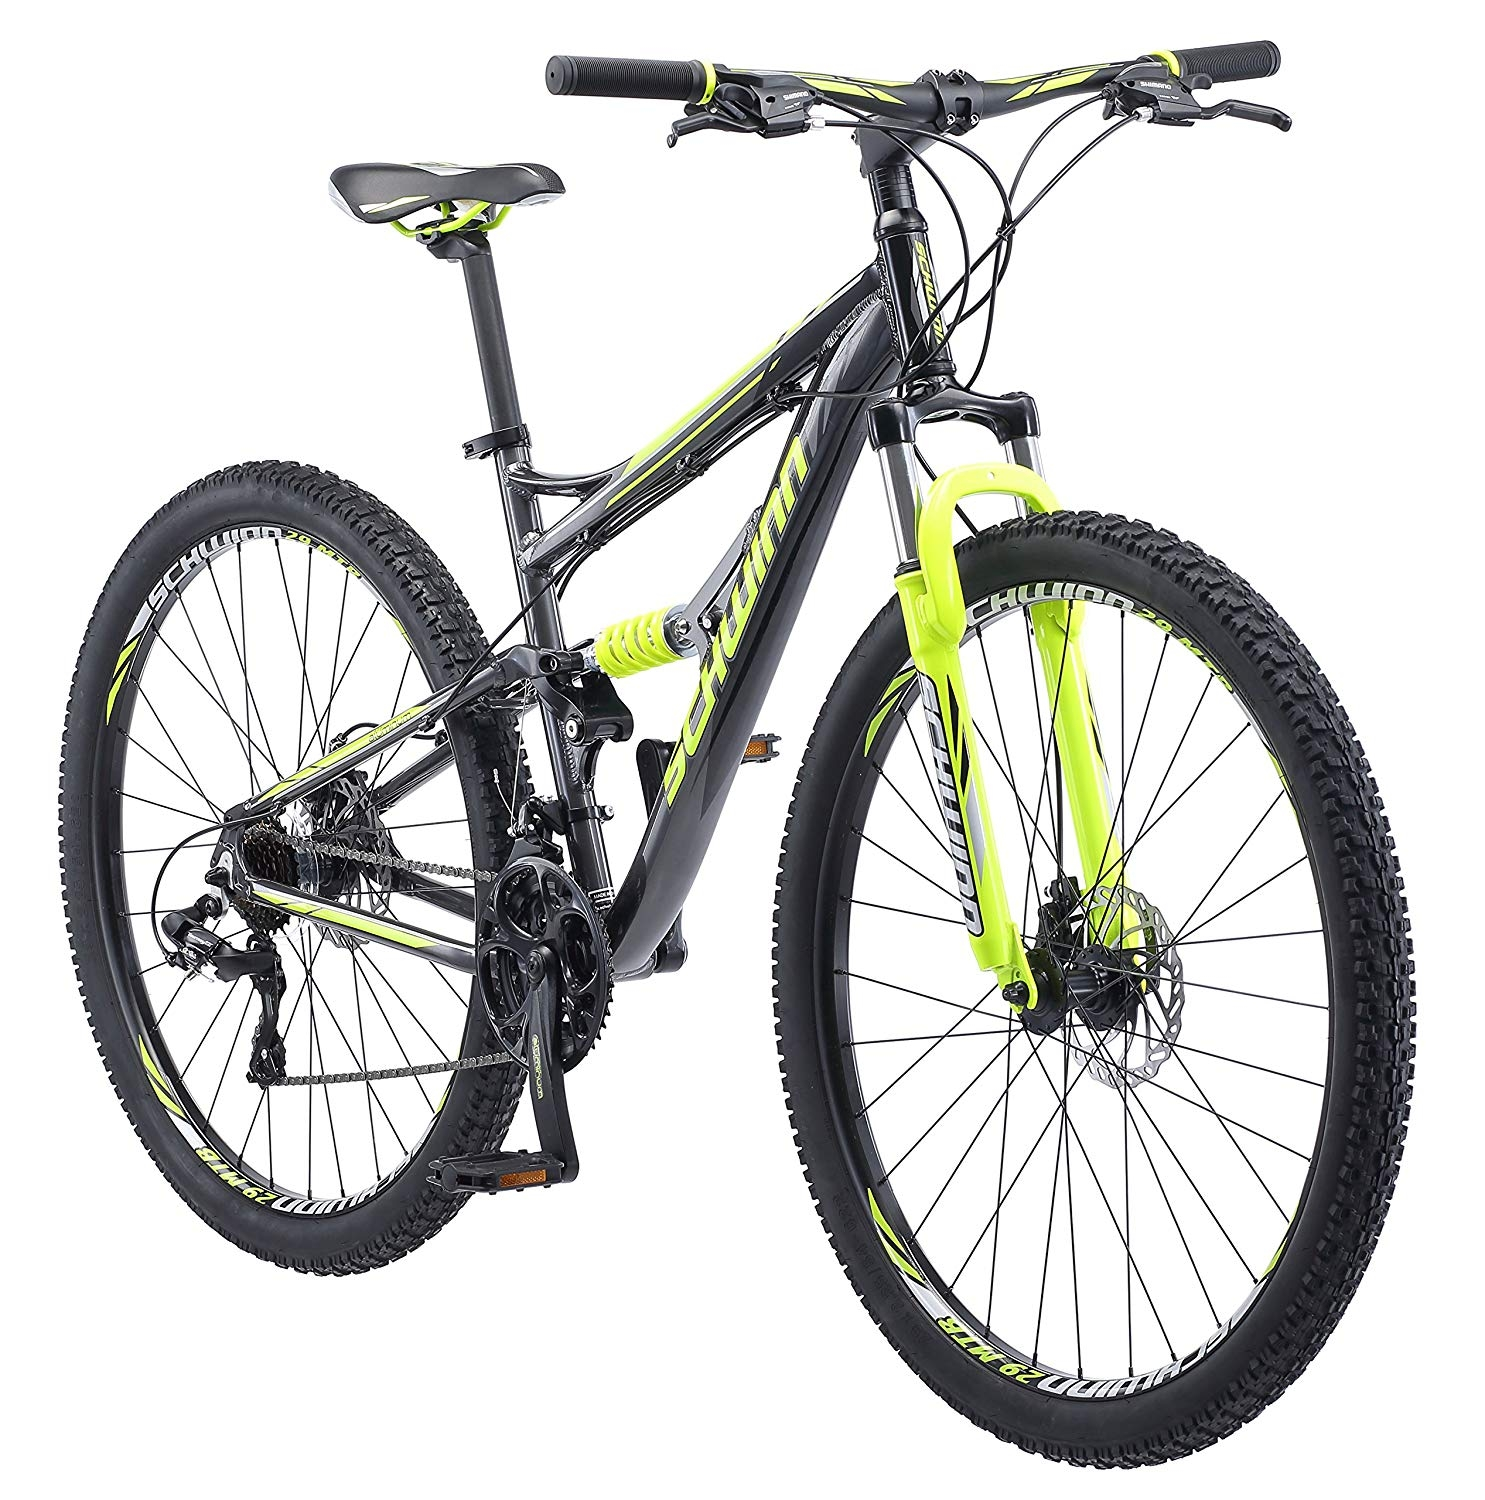 Traxion 29 inch Wheels Schwinn mountain bike Review